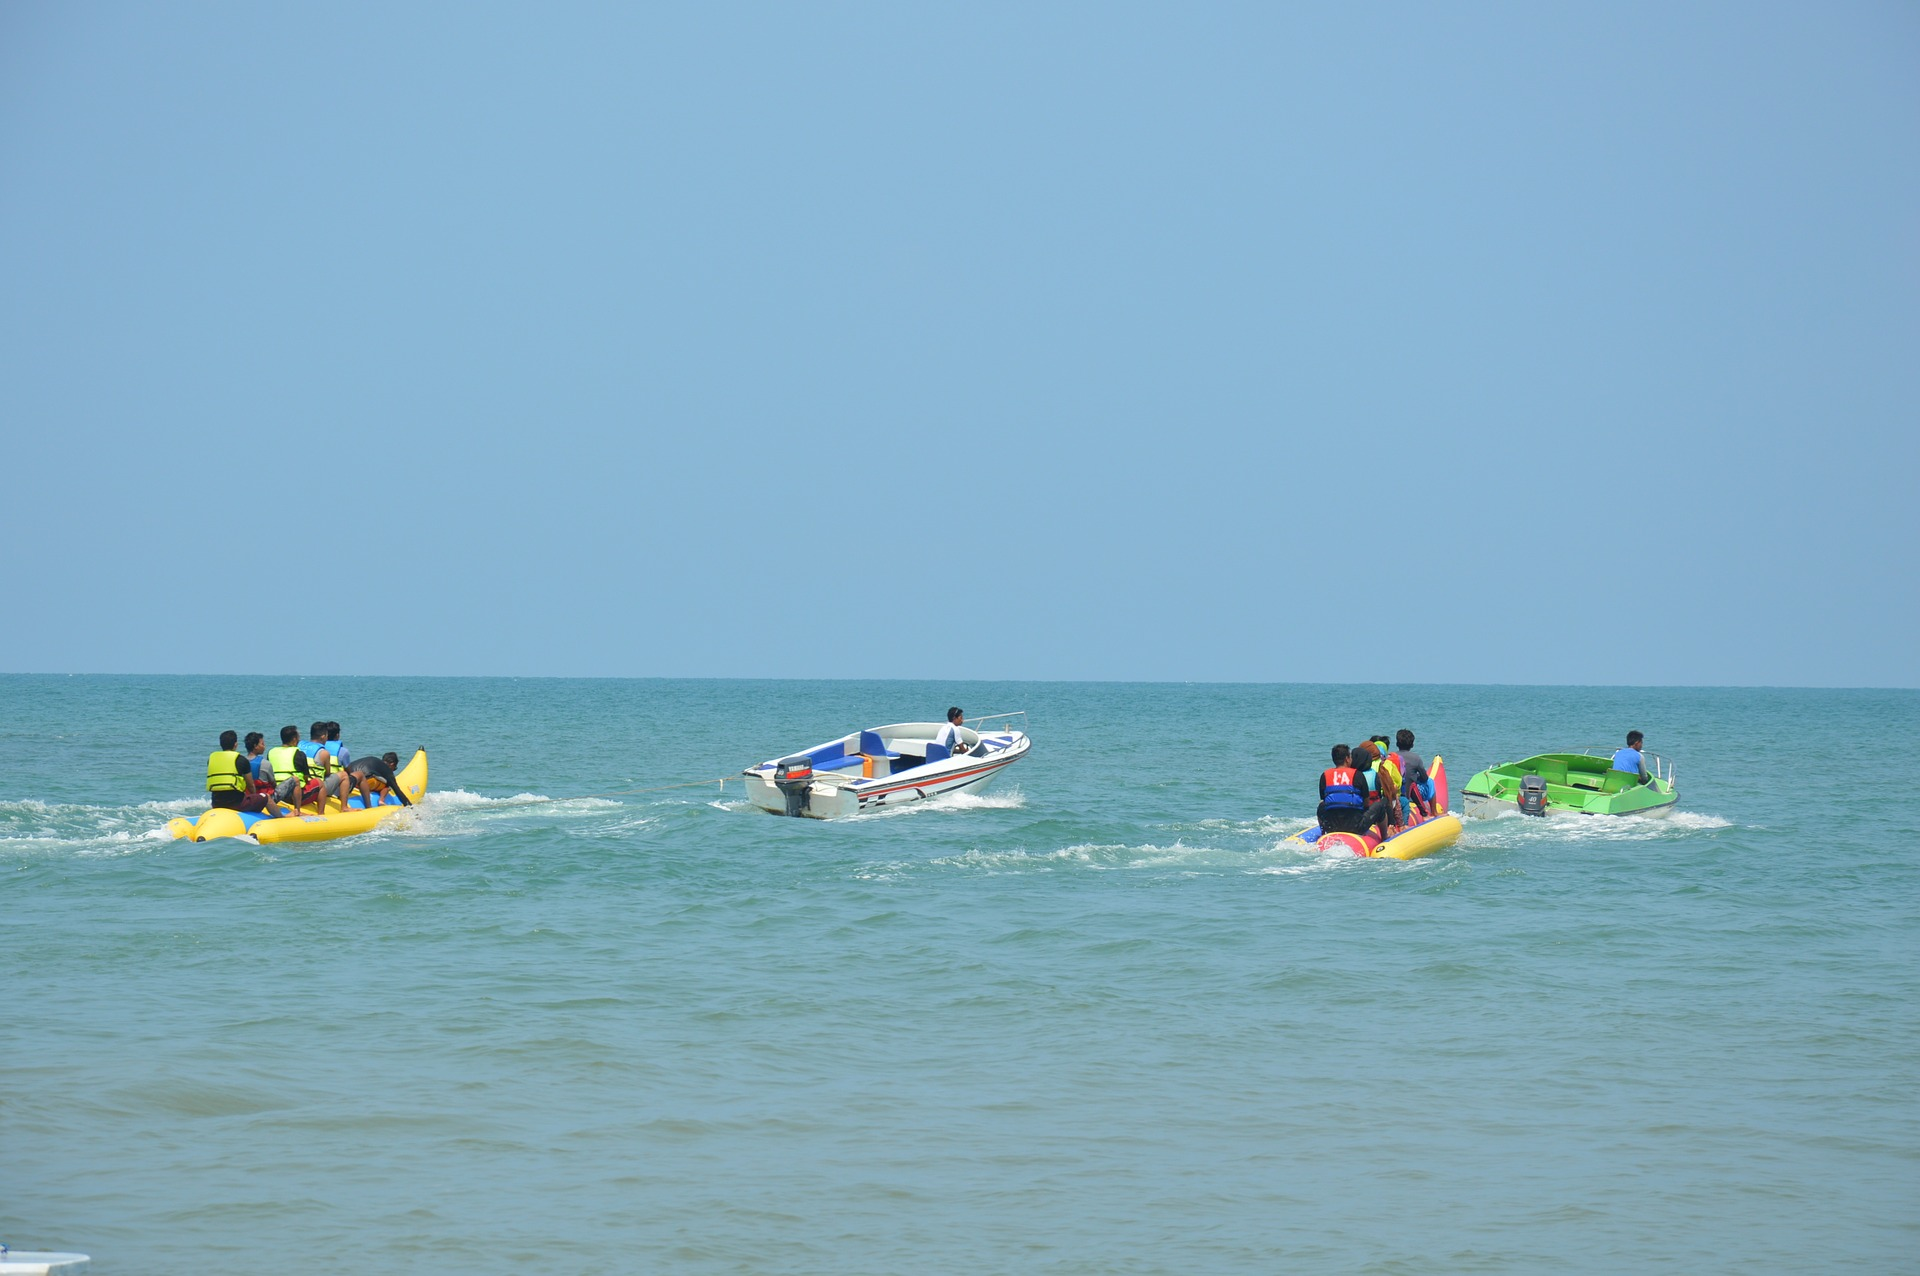 Banana Boat Ride Adventure Sports In Kochi That One Must Try